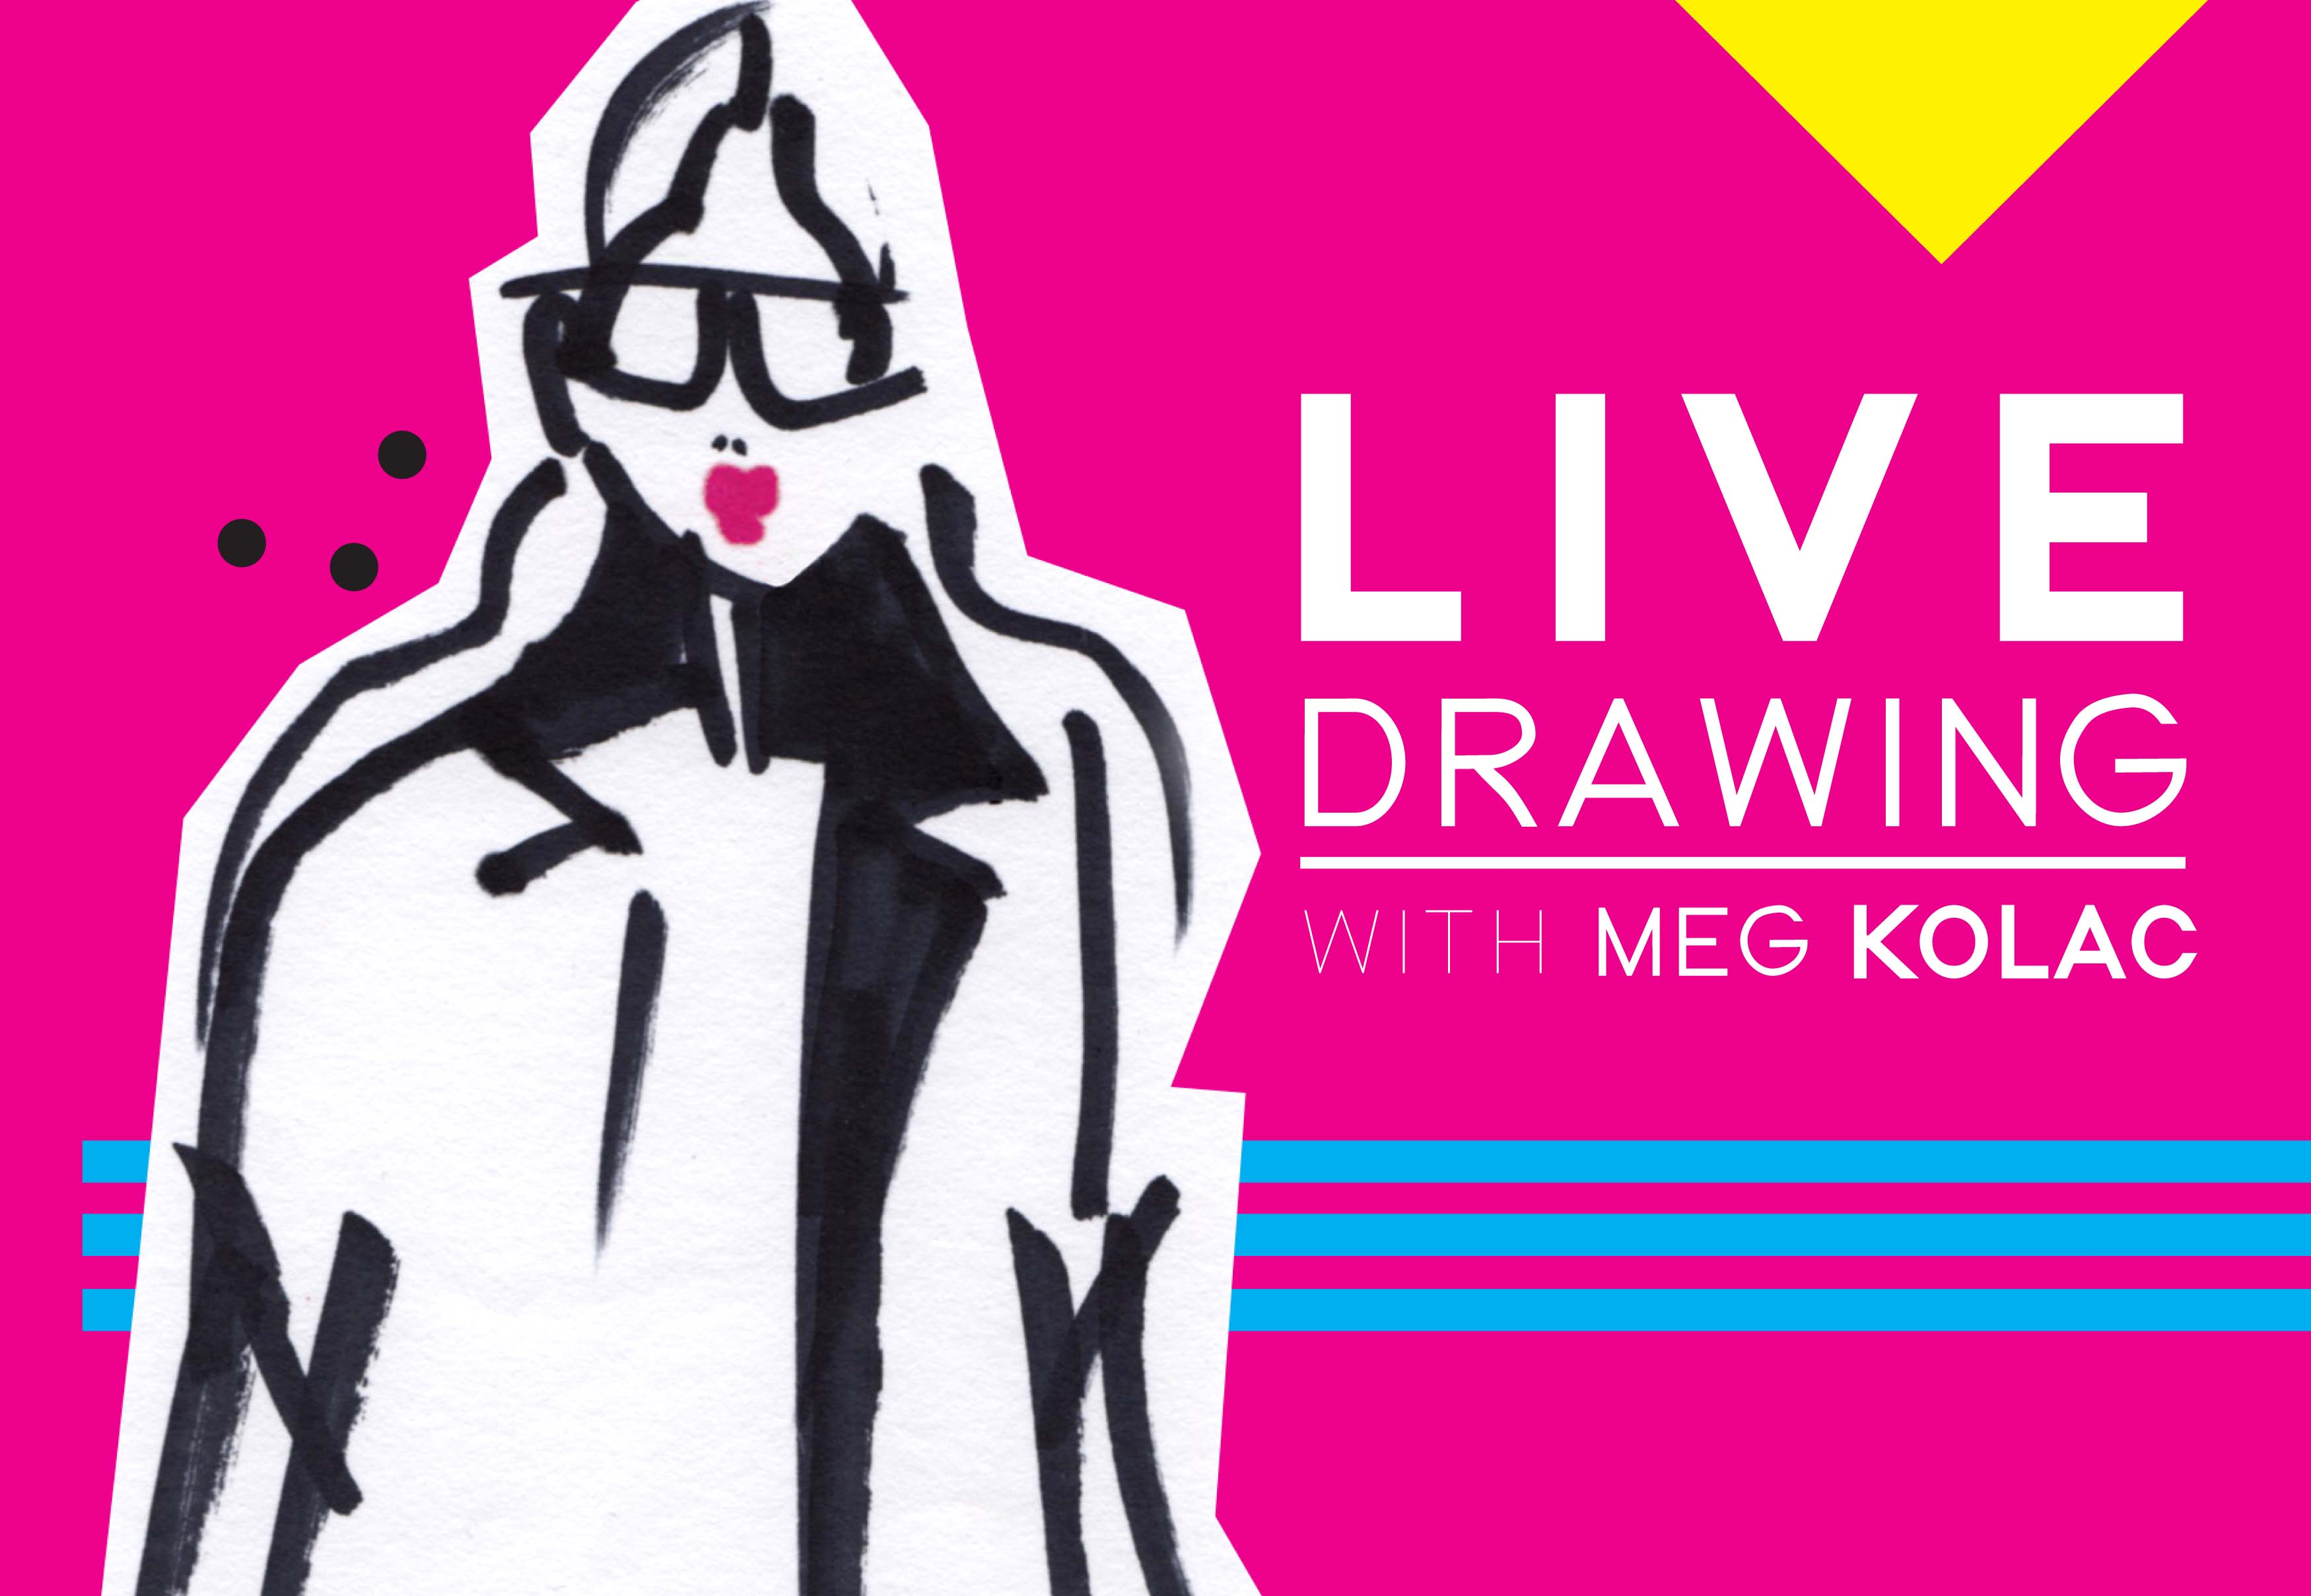 Live Drawing with Meg Kolac